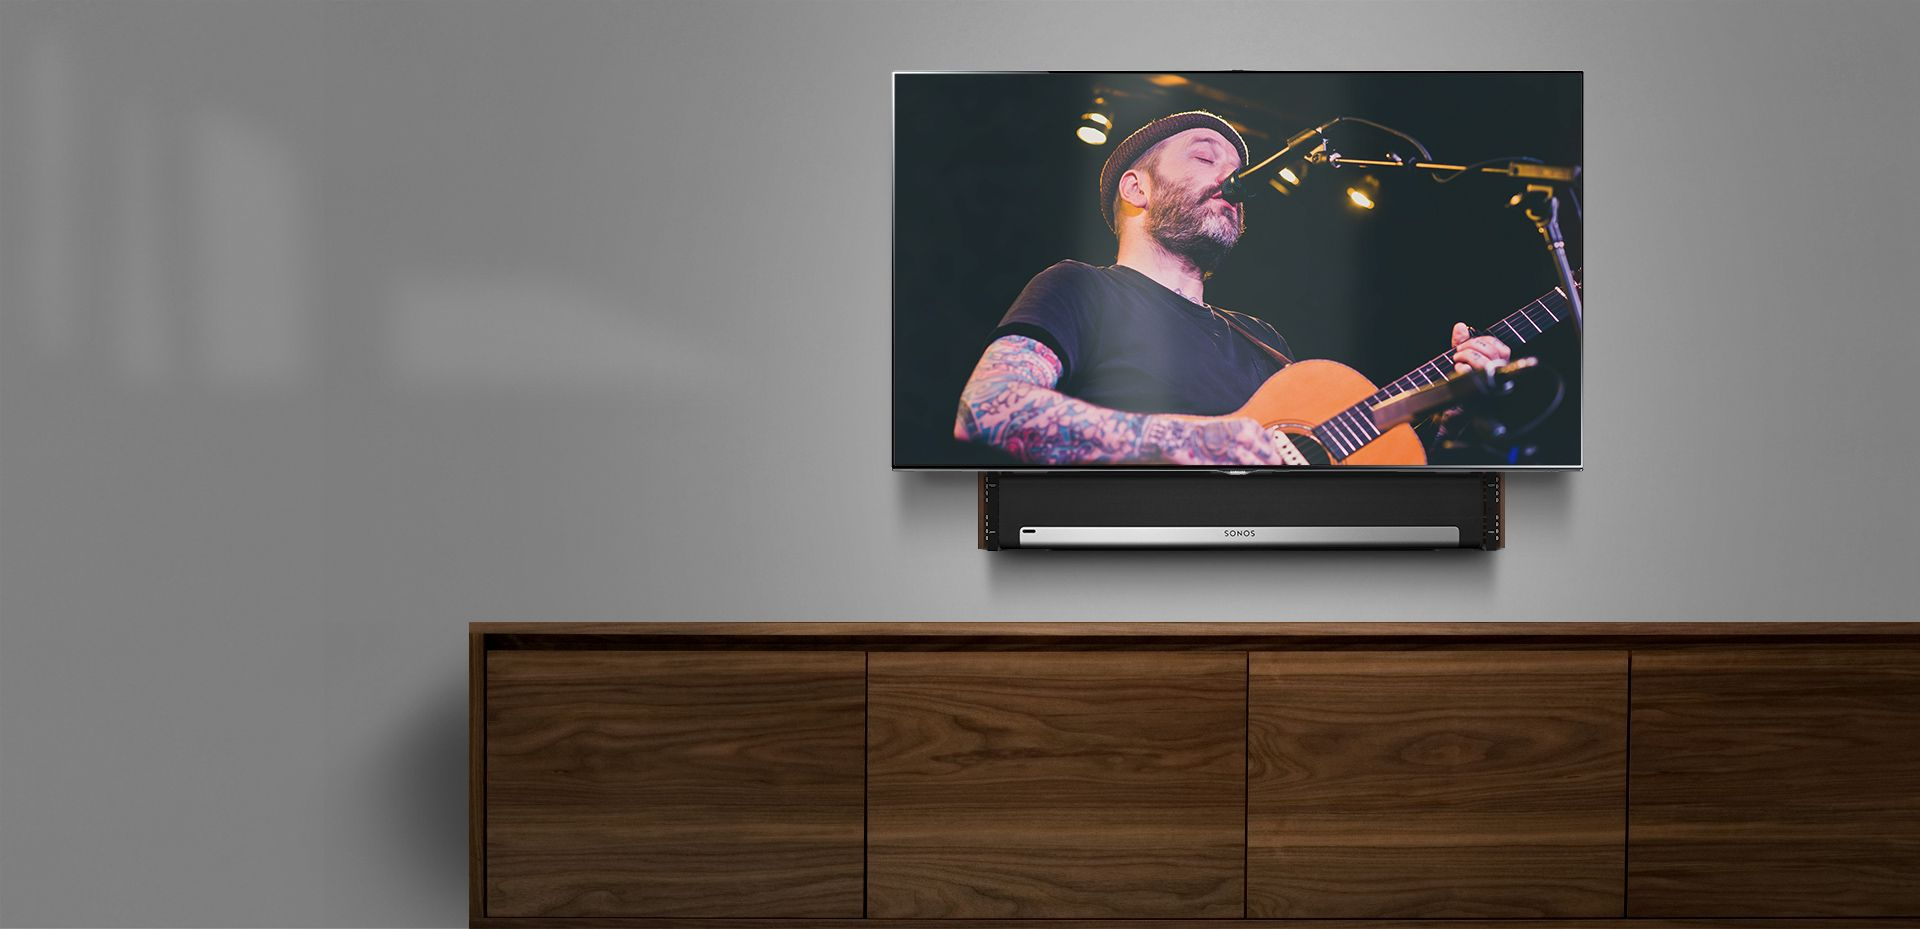 Sonos Playbar: for music lovers